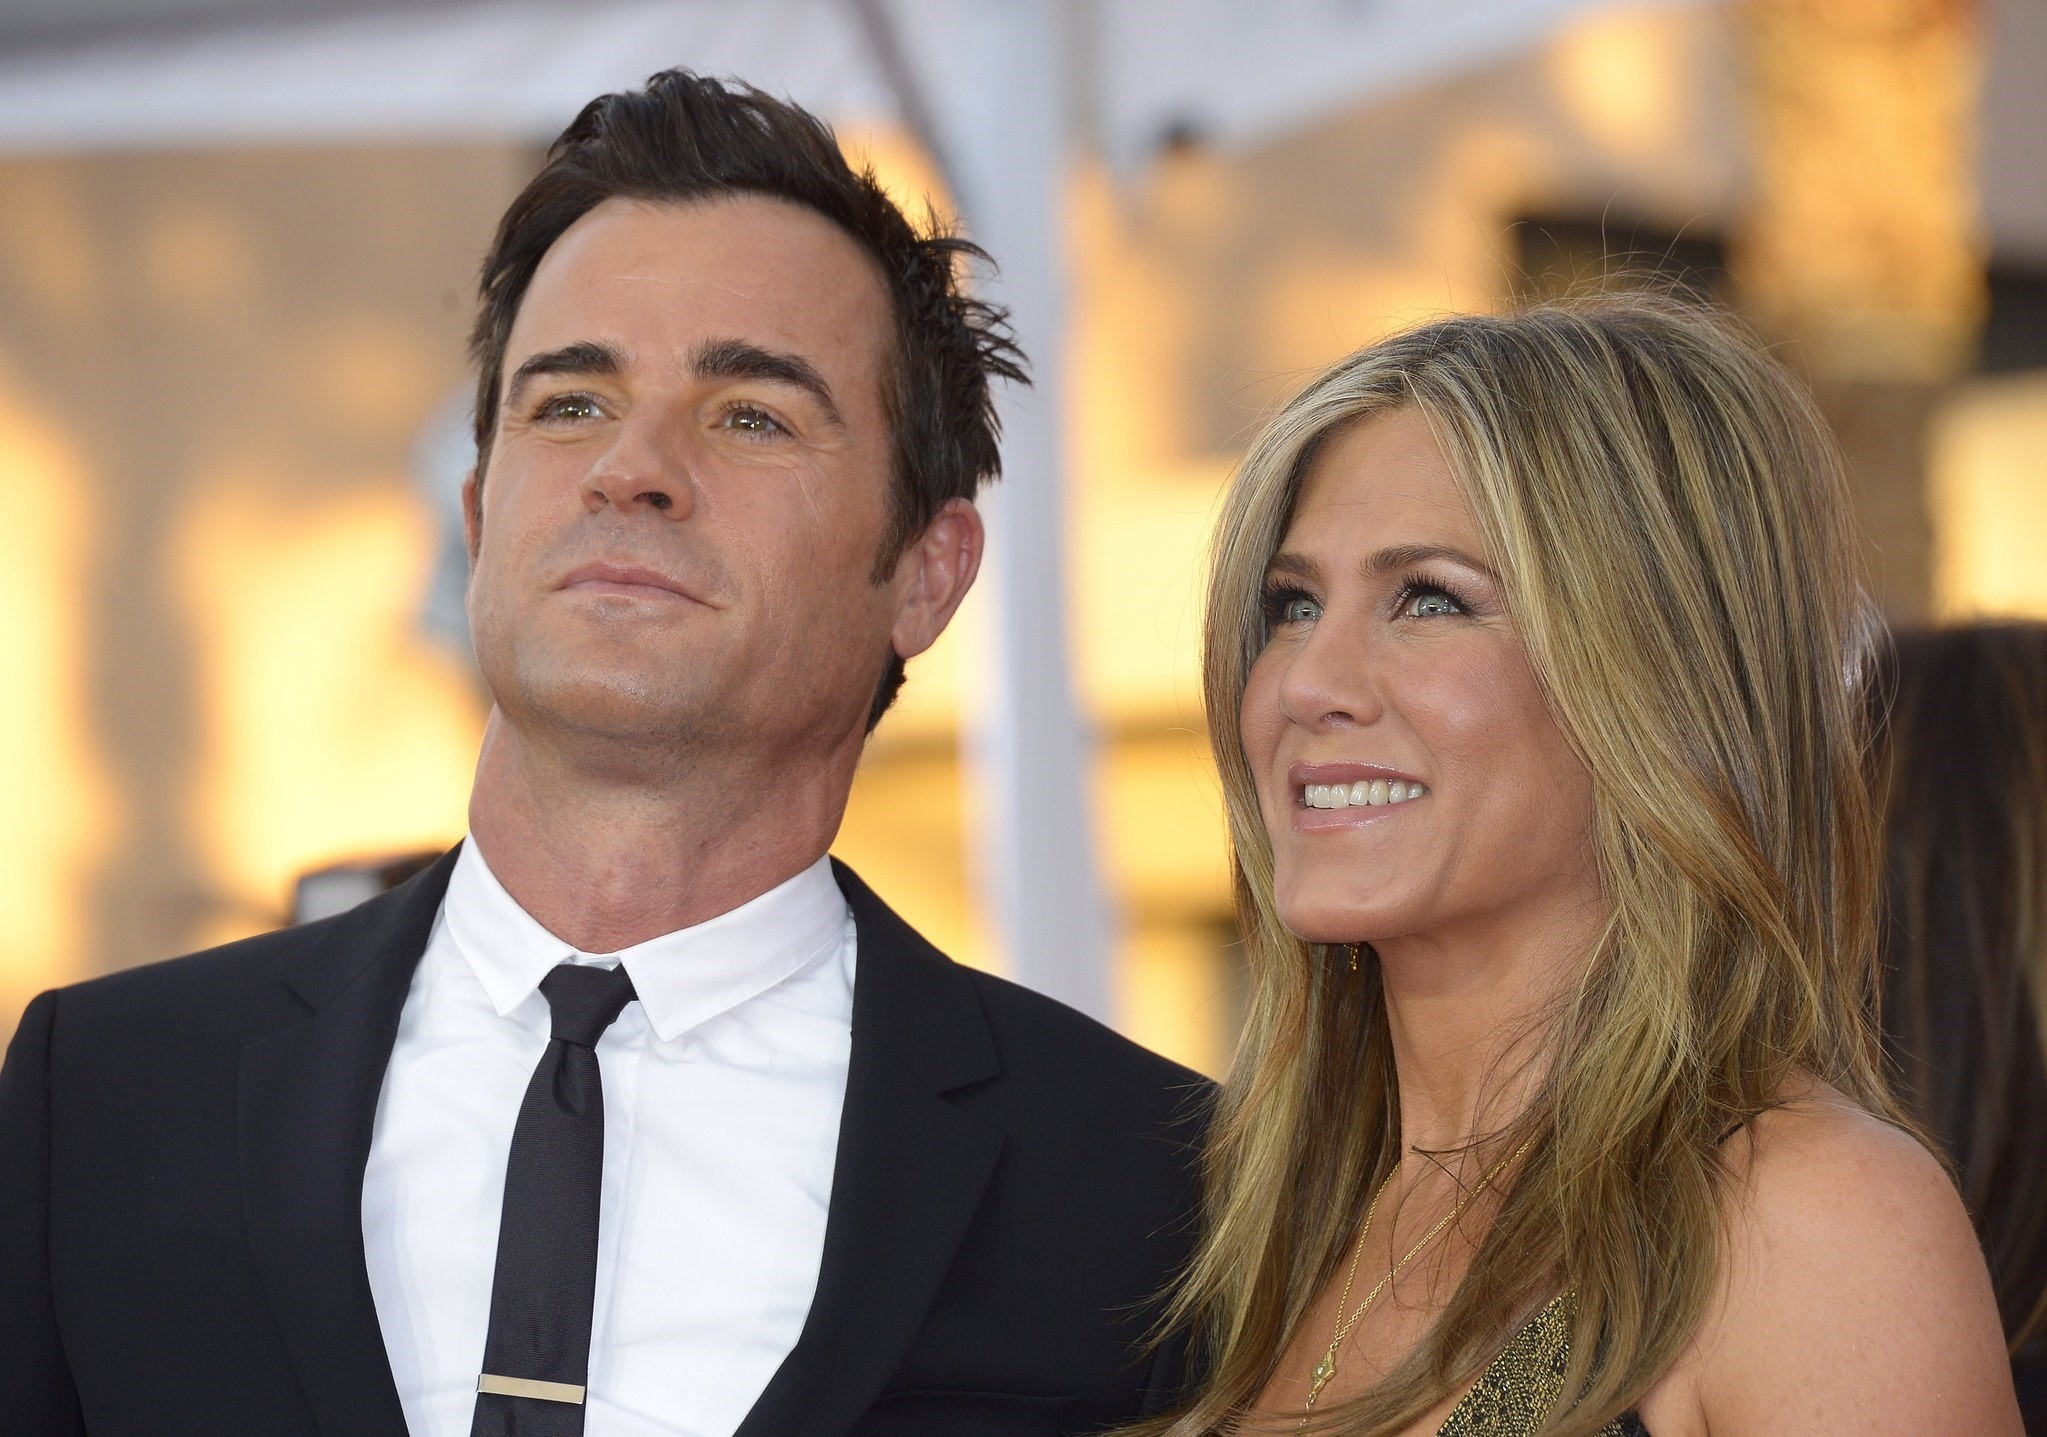 US actors Jennifer Aniston (R) and Justin Theroux (L) arrive for the 21st annual Screen Actors Guild Awards ceremony at the Shrine Auditorium in Los Angeles, California, USA, 25 January 2015. (EPA Photo)